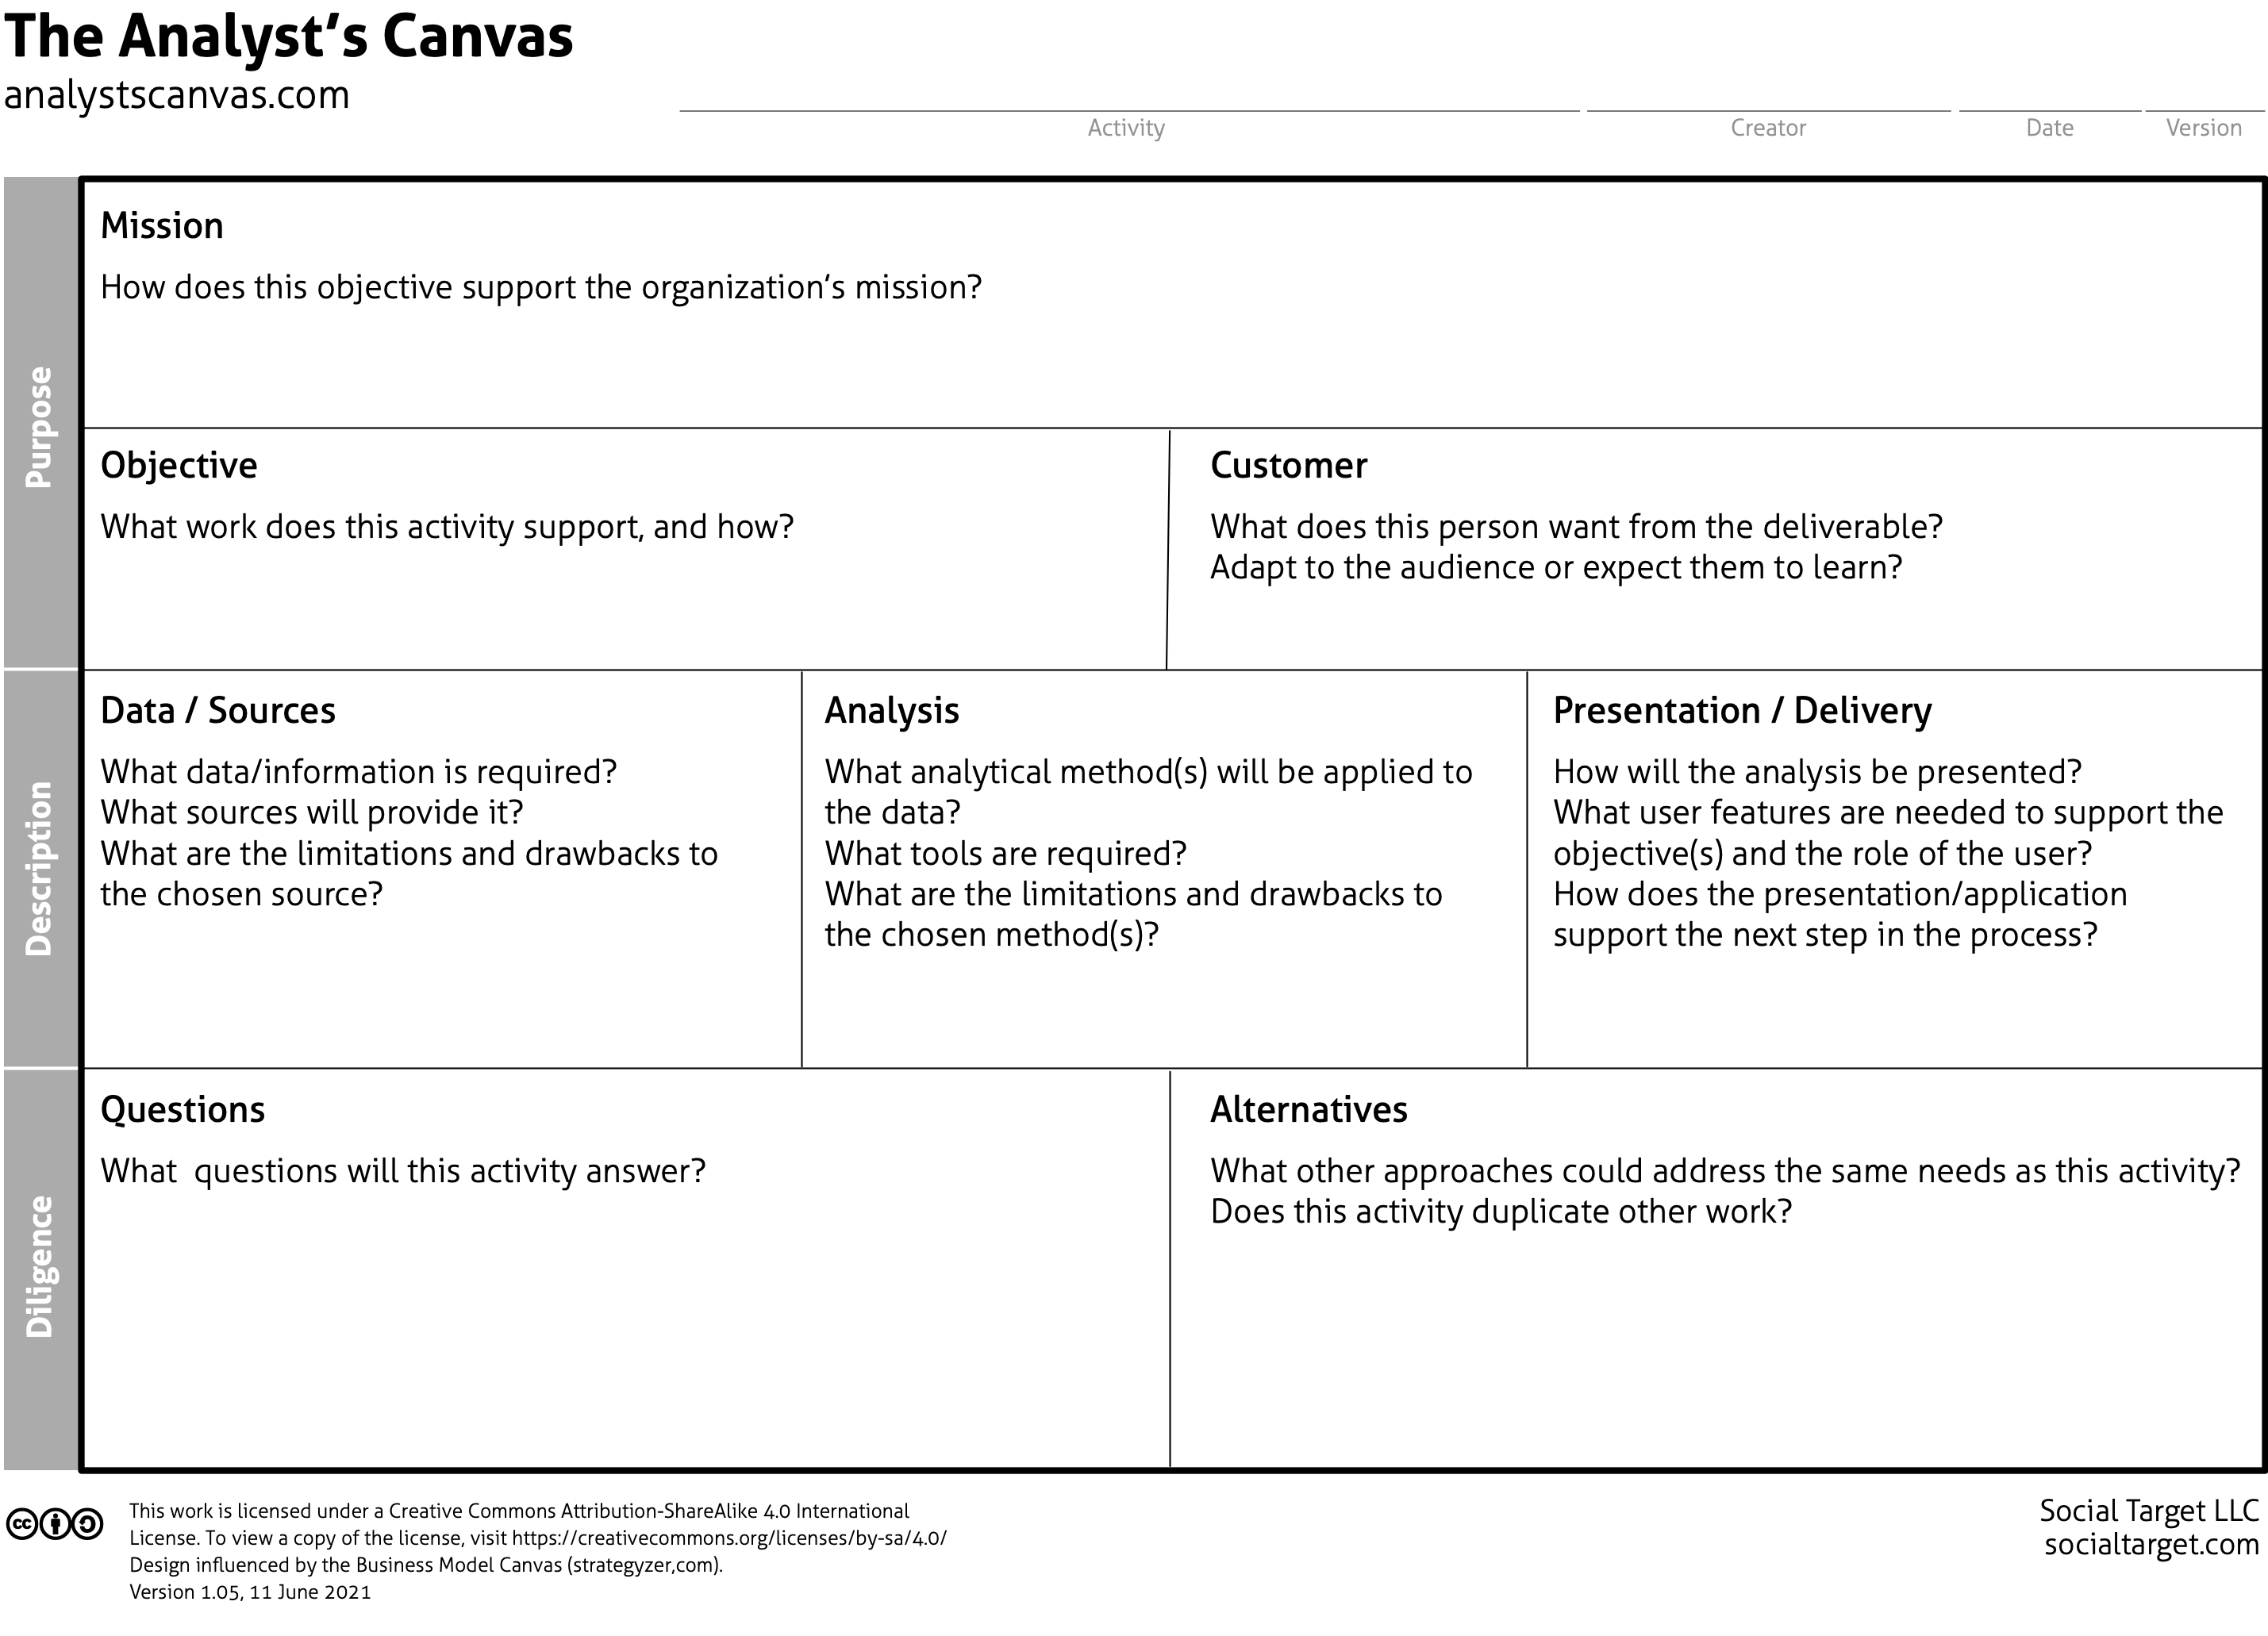 The analysts canvas captioned